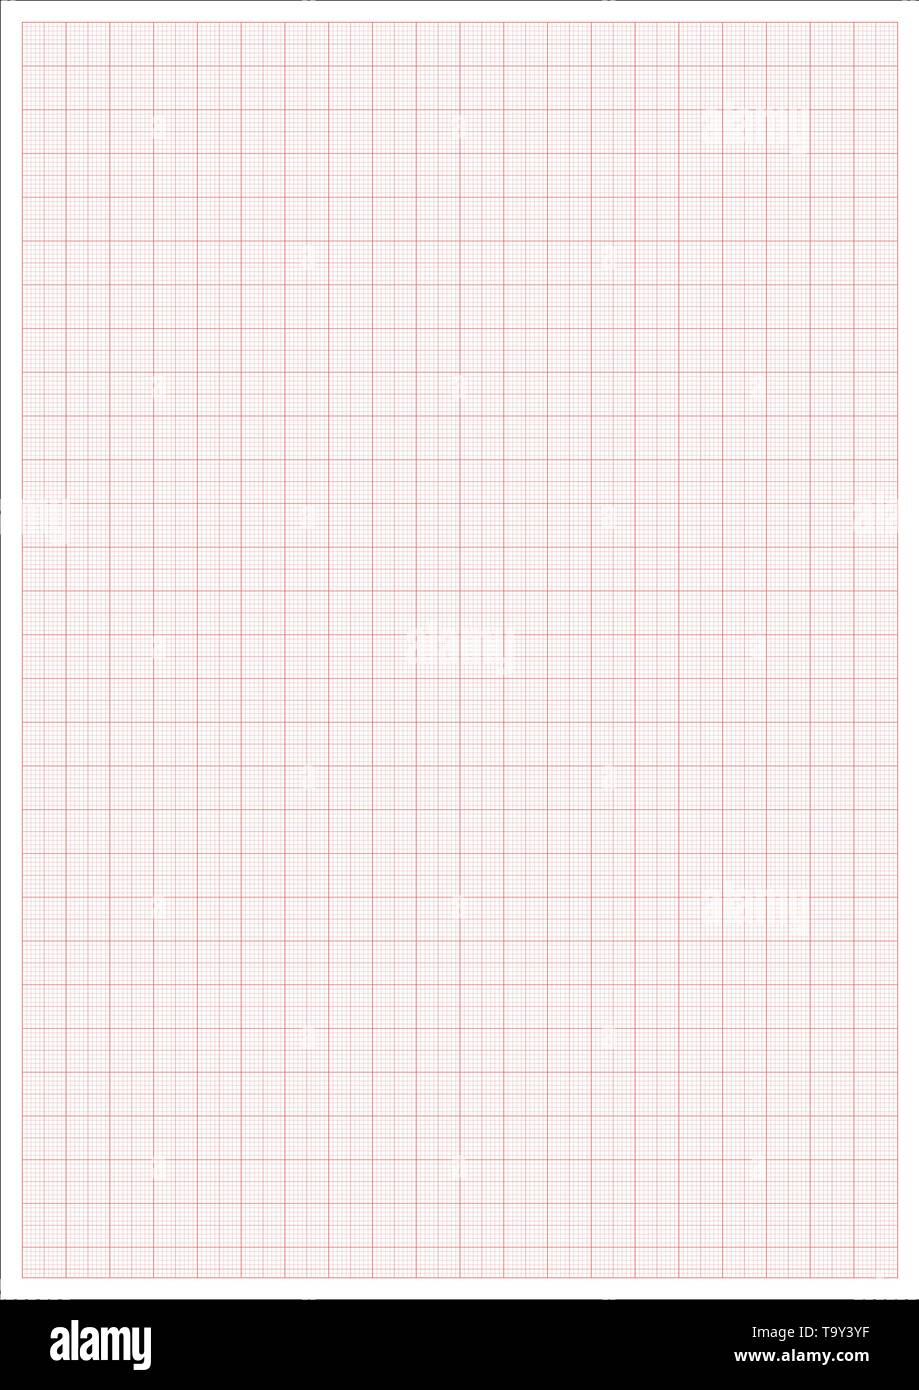 Millimeter paper. Millimeterpapier grid red ruler. a4 graphic vector sheet - Stock Image